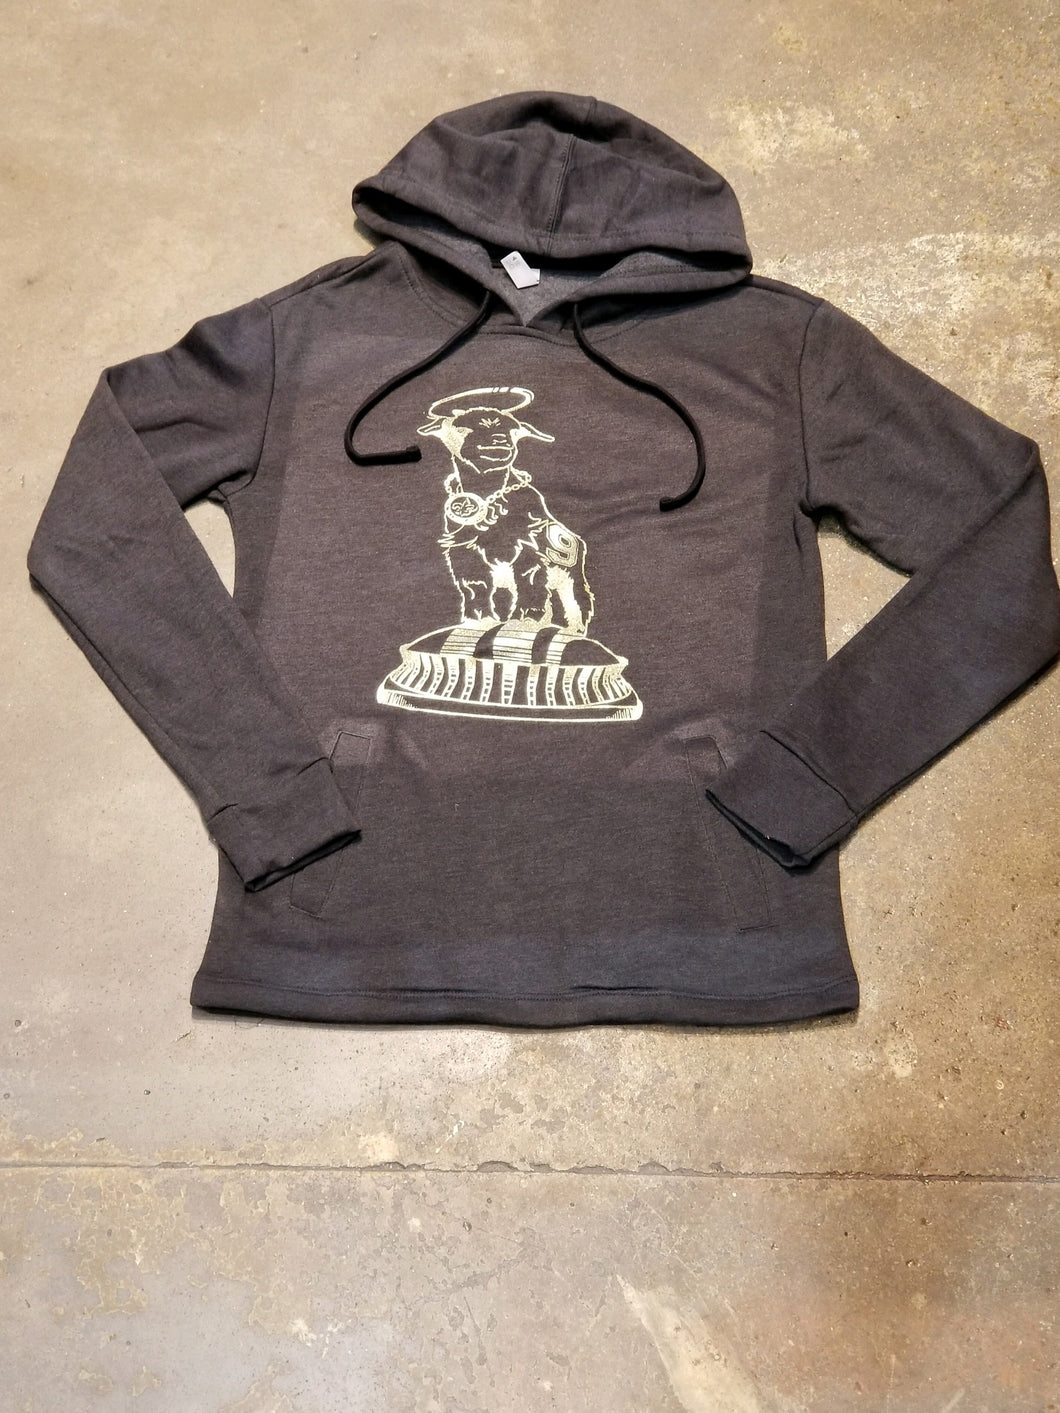 GOAT - G.O.A.T Greatest of All Time, Pull-Over Hoodie